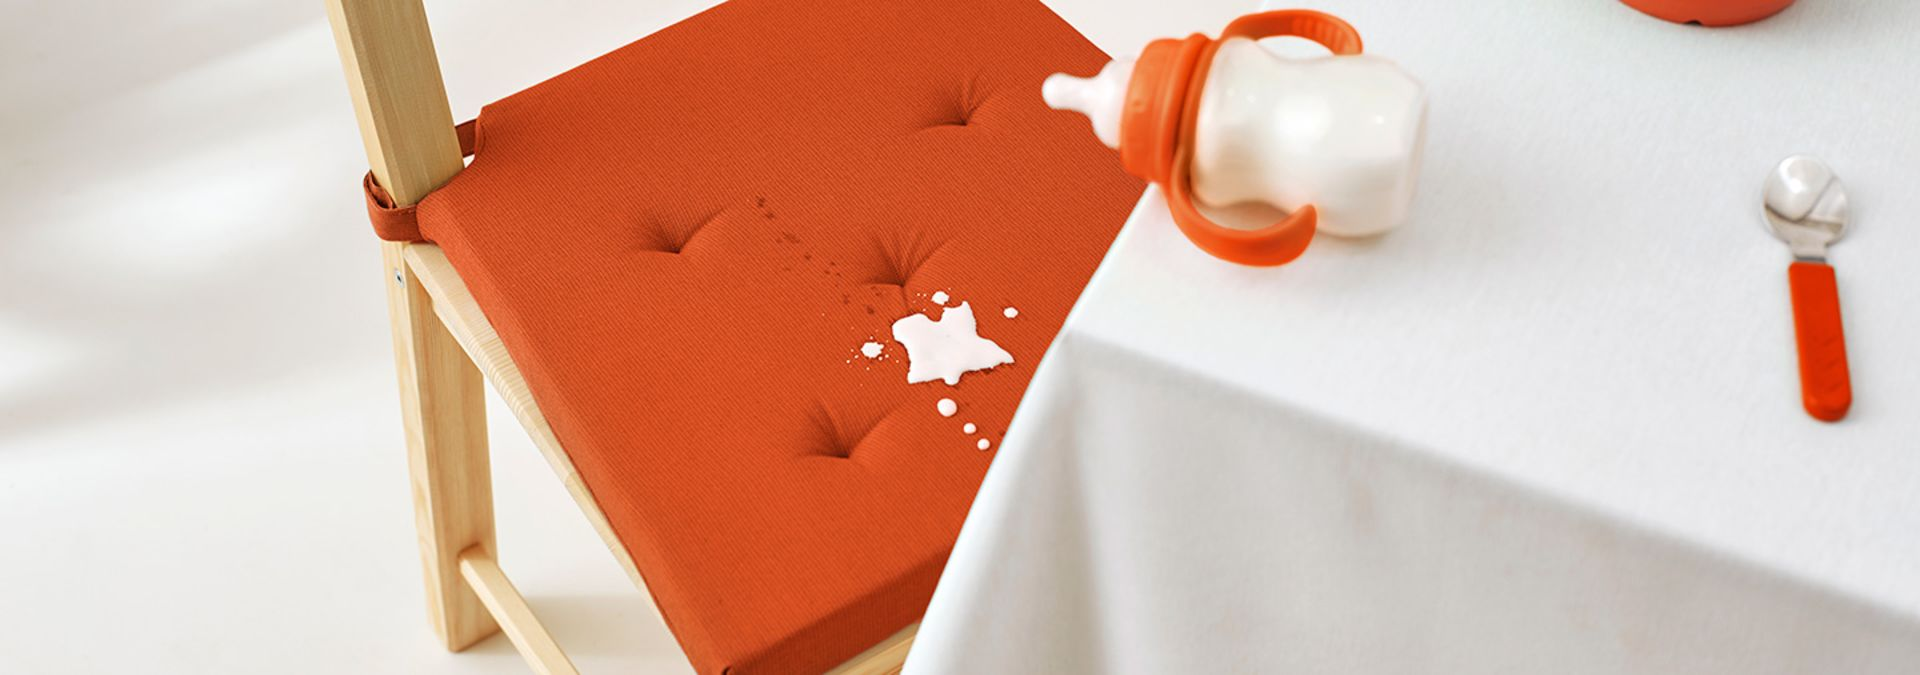 Baby formula stains on an orange chair cover